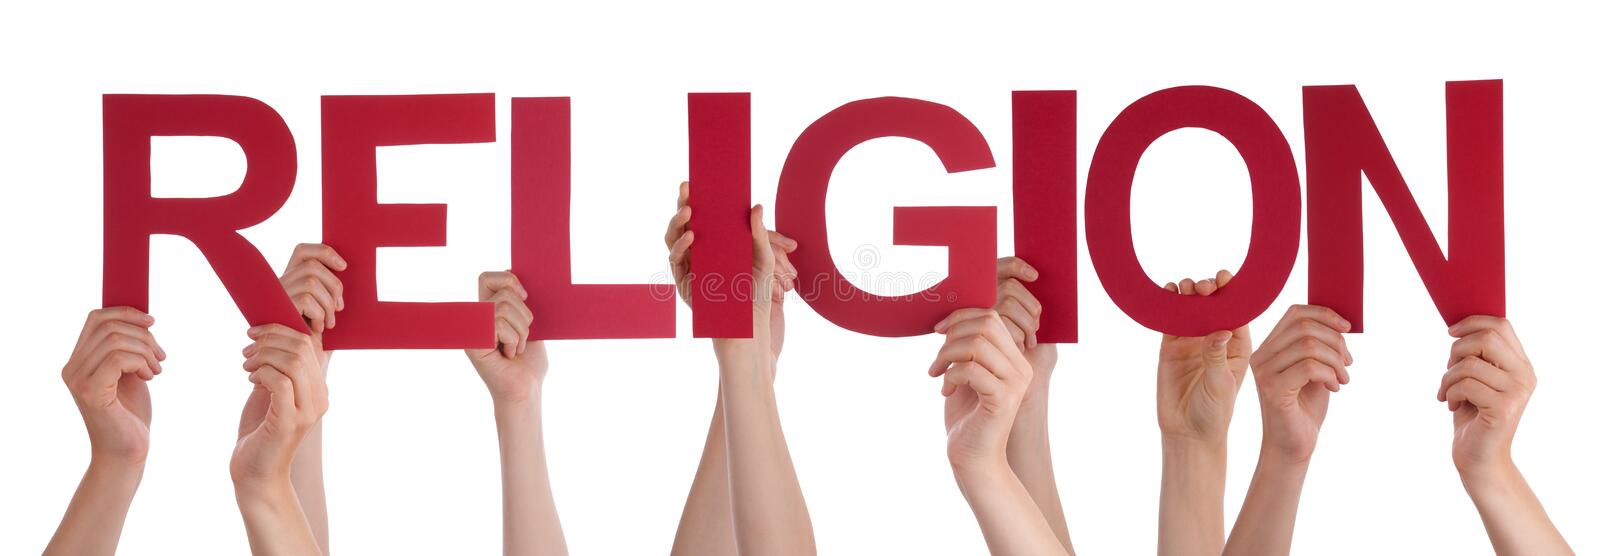 People Hands Holding Red Straight Word Religion. Many Caucasian People And Hands Holding Red Straight Letters Or Characters Building The Isolated English Word royalty free stock photo